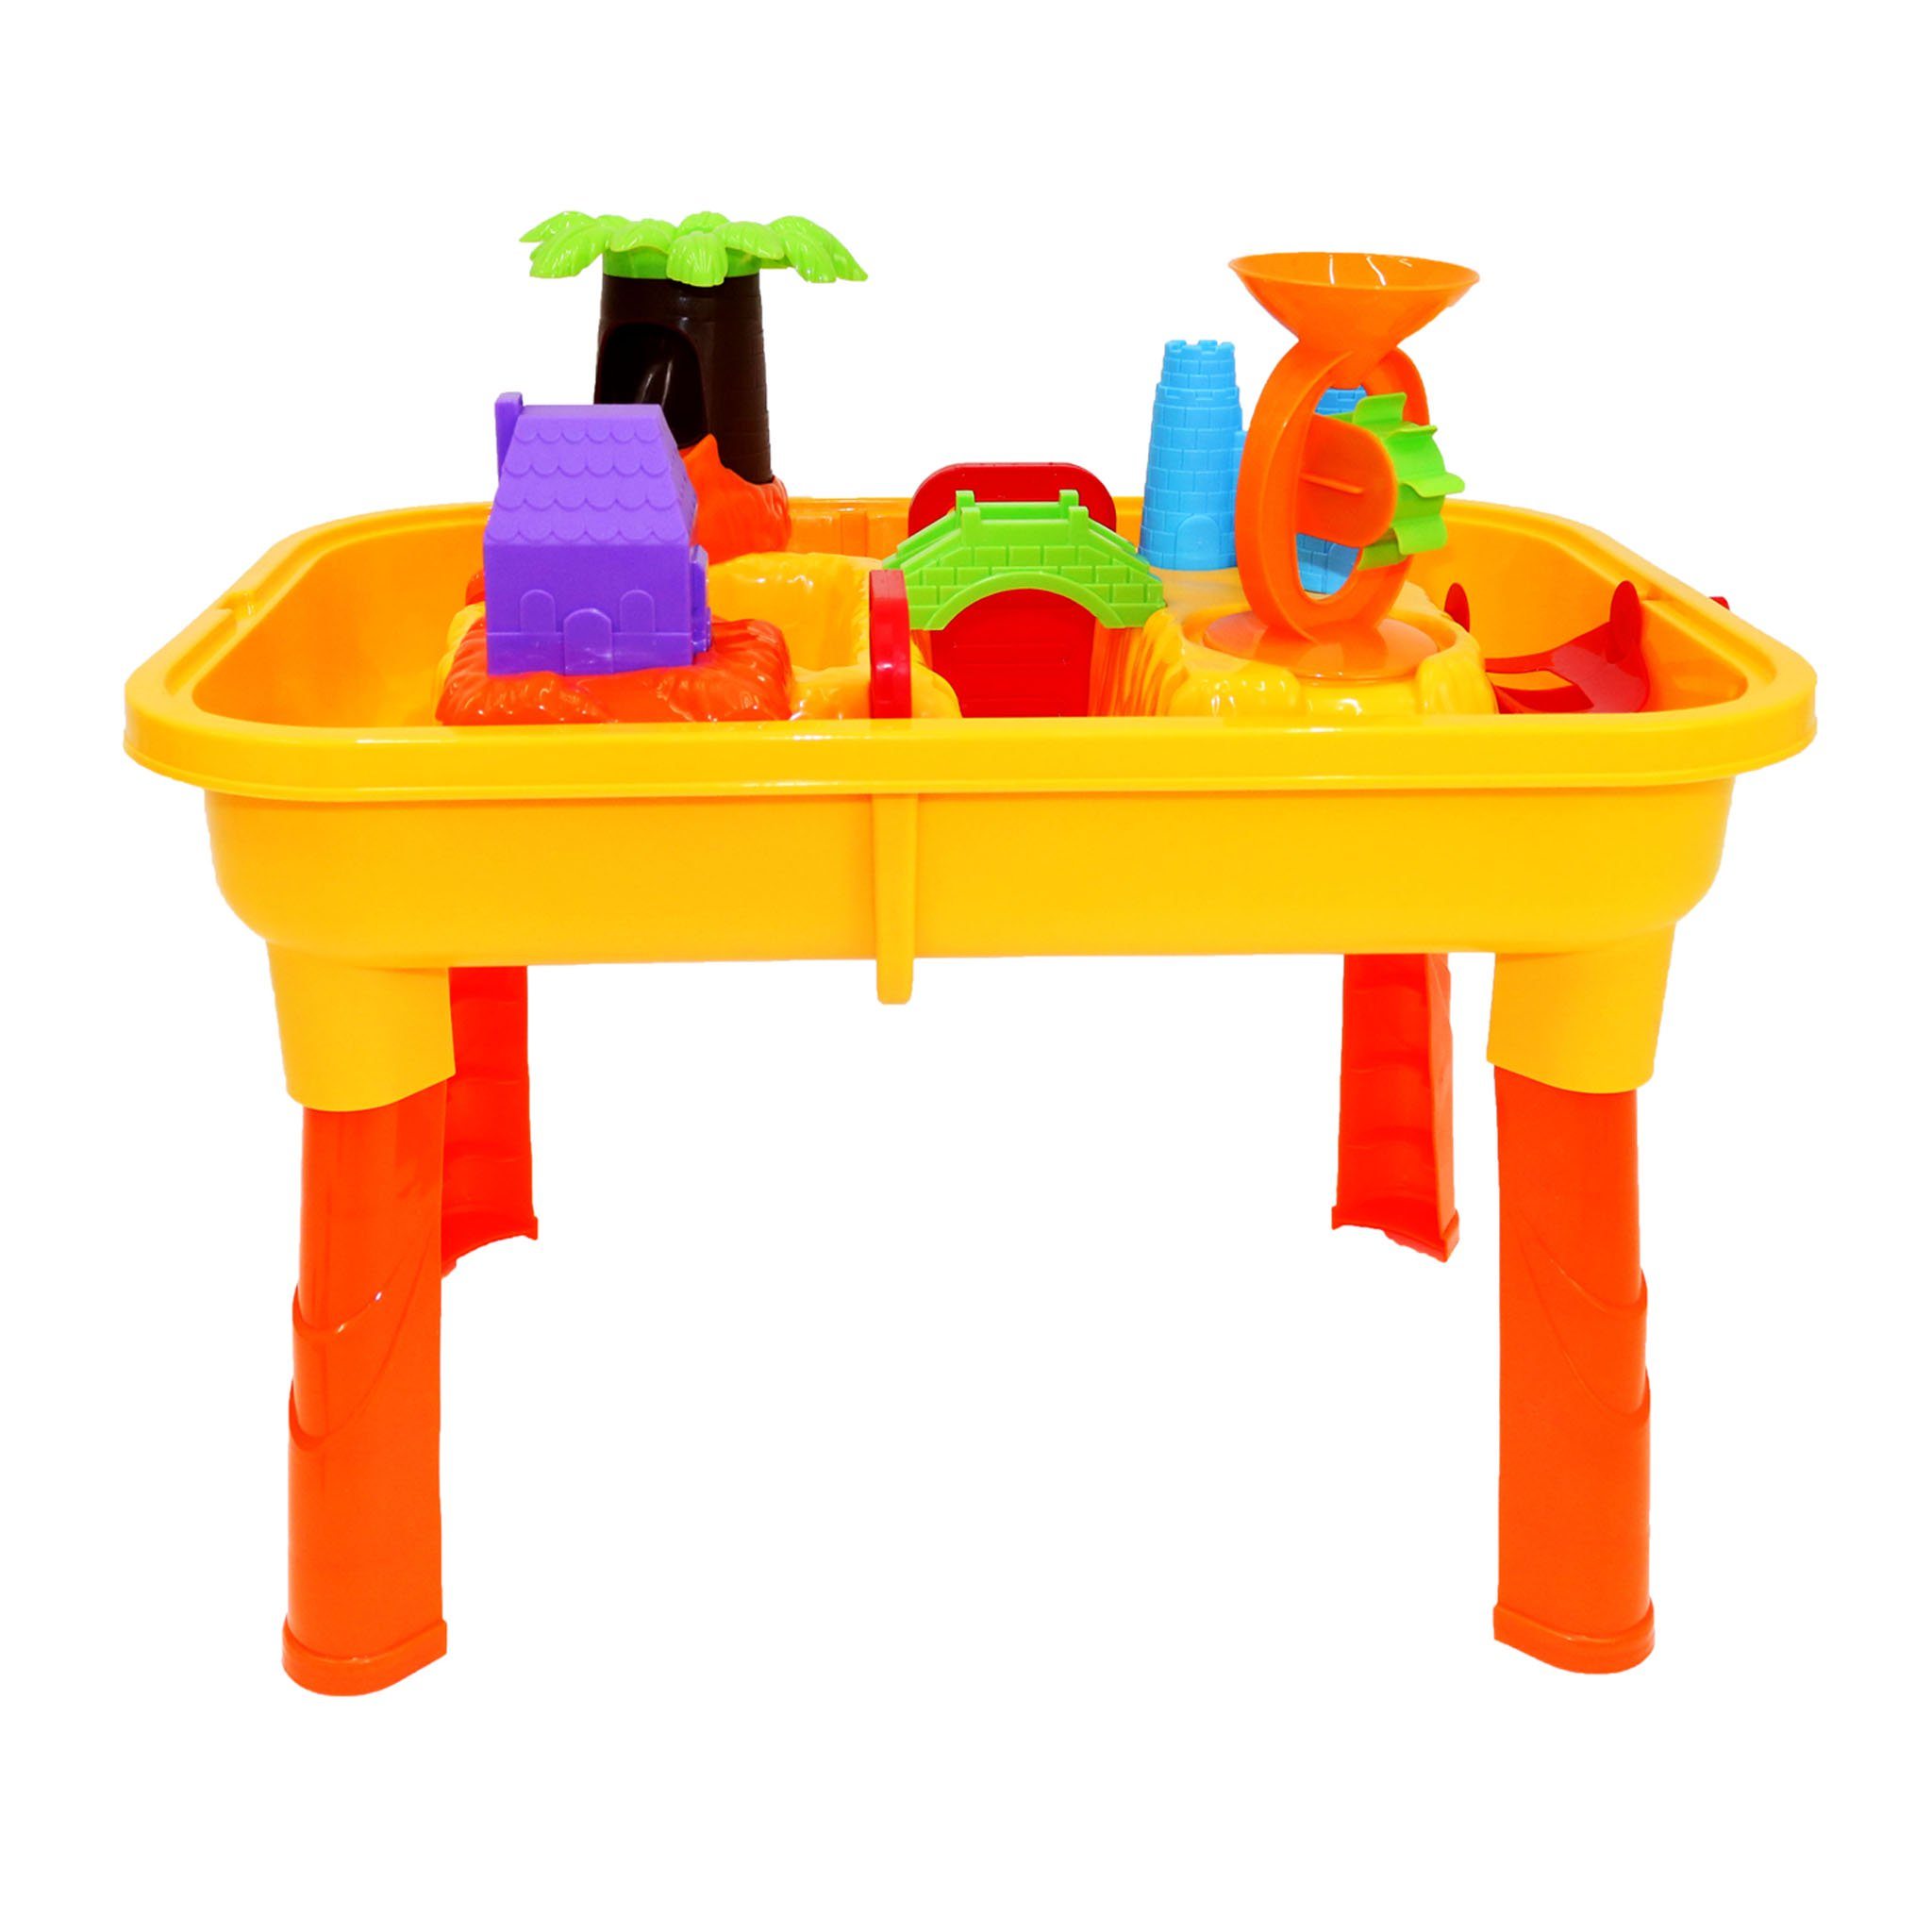 Indoor Toys : Who Needs Shops